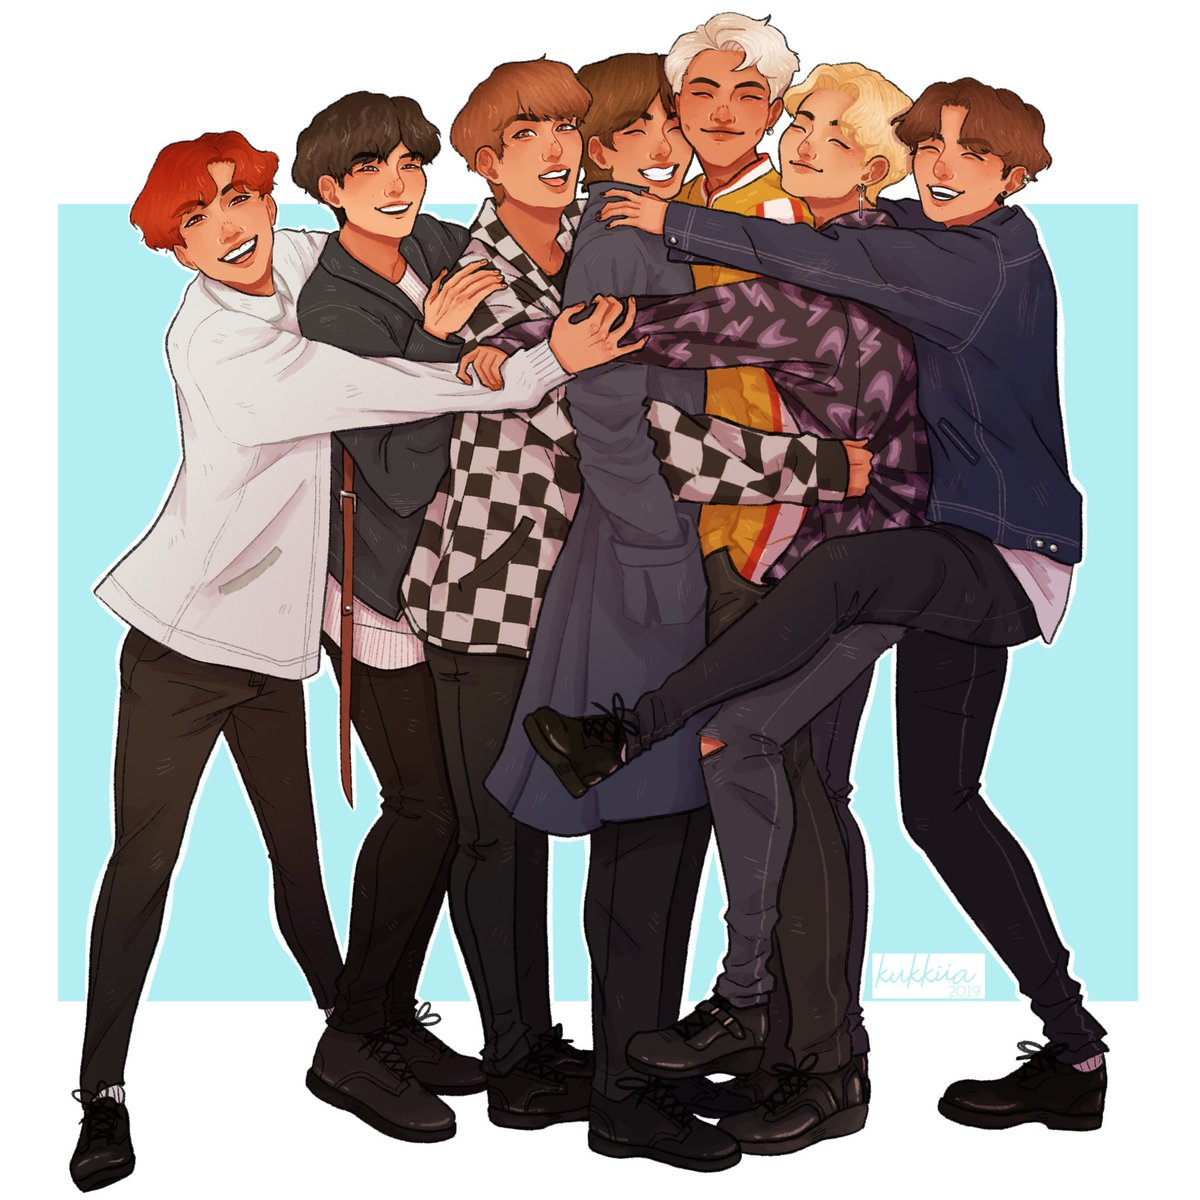 What a relief, that we are seven What a relief, that we are together #6YearsWithOurHomeBTS   #btsfanart #BTS #OT7<br>http://pic.twitter.com/01Sf4apBqt